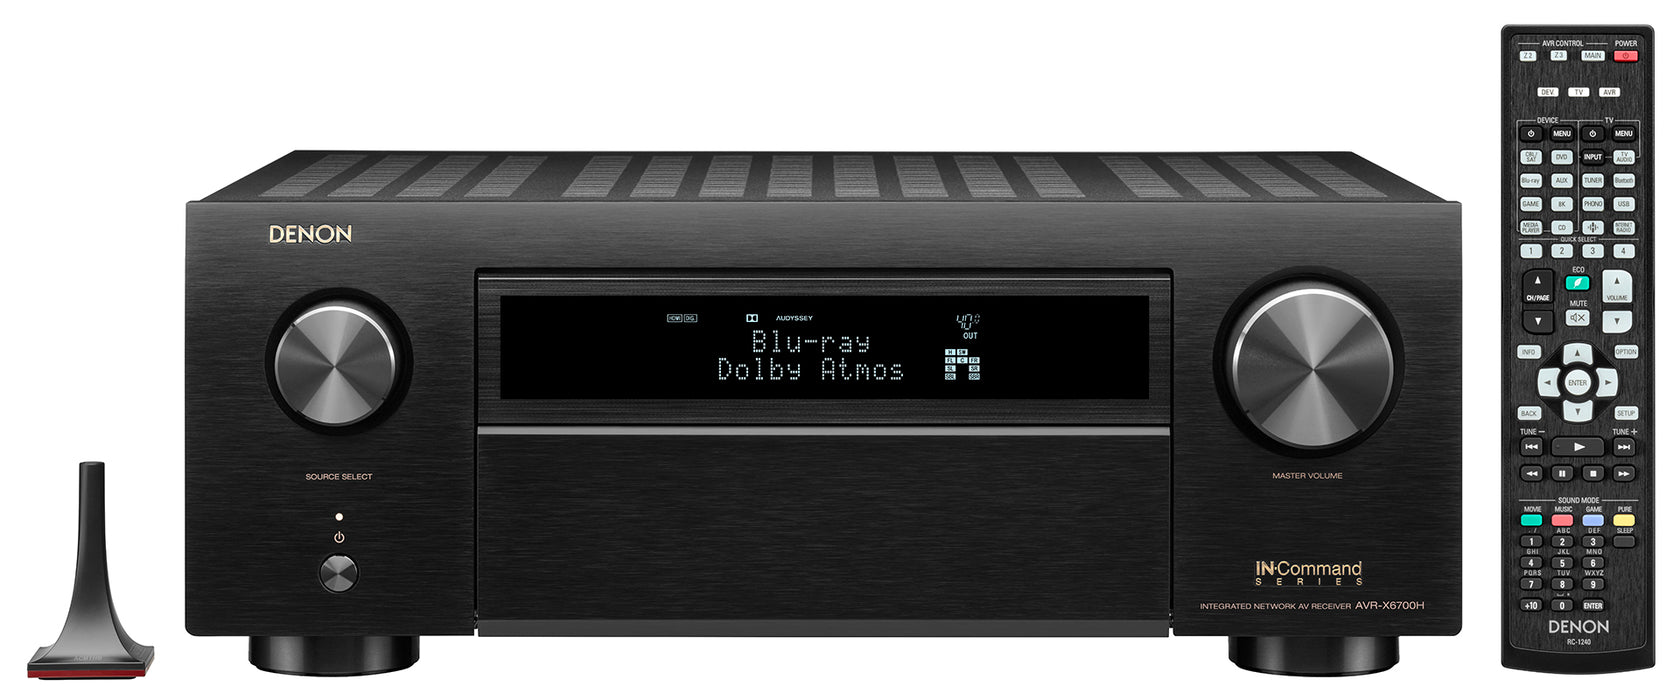 Denon AVR-X6700H 11.2 Channel 8K A/V Receiver with 3D Audio and Amazon Alexa Voice Control - Safe and Sound HQ